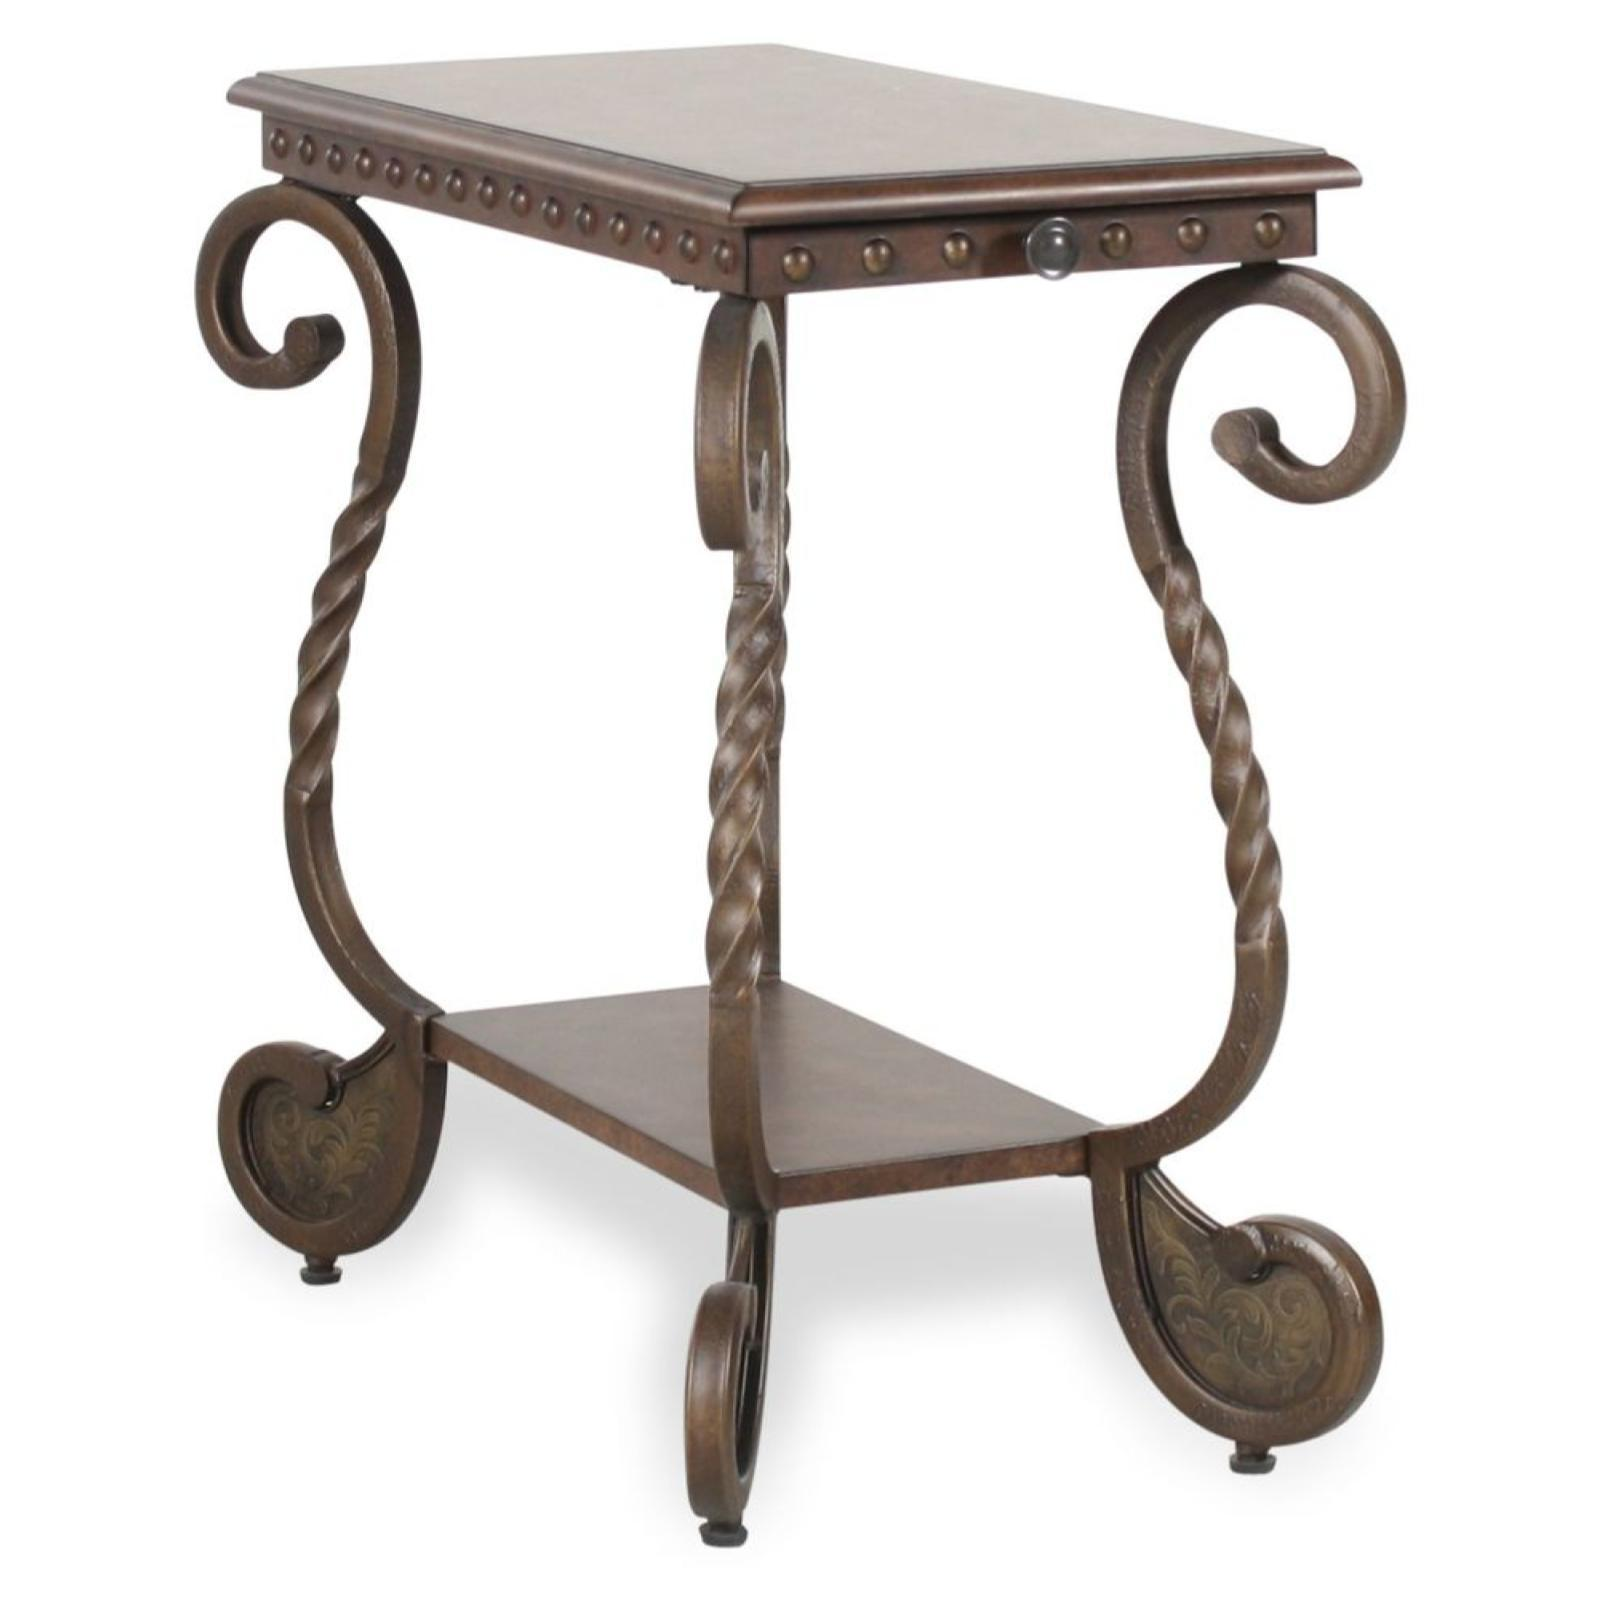 rafferty end table adams furniture web ashley occasional tables odd coffee making dog for large broyhill locations cream wood round glass top dining and chairs gray tray crate